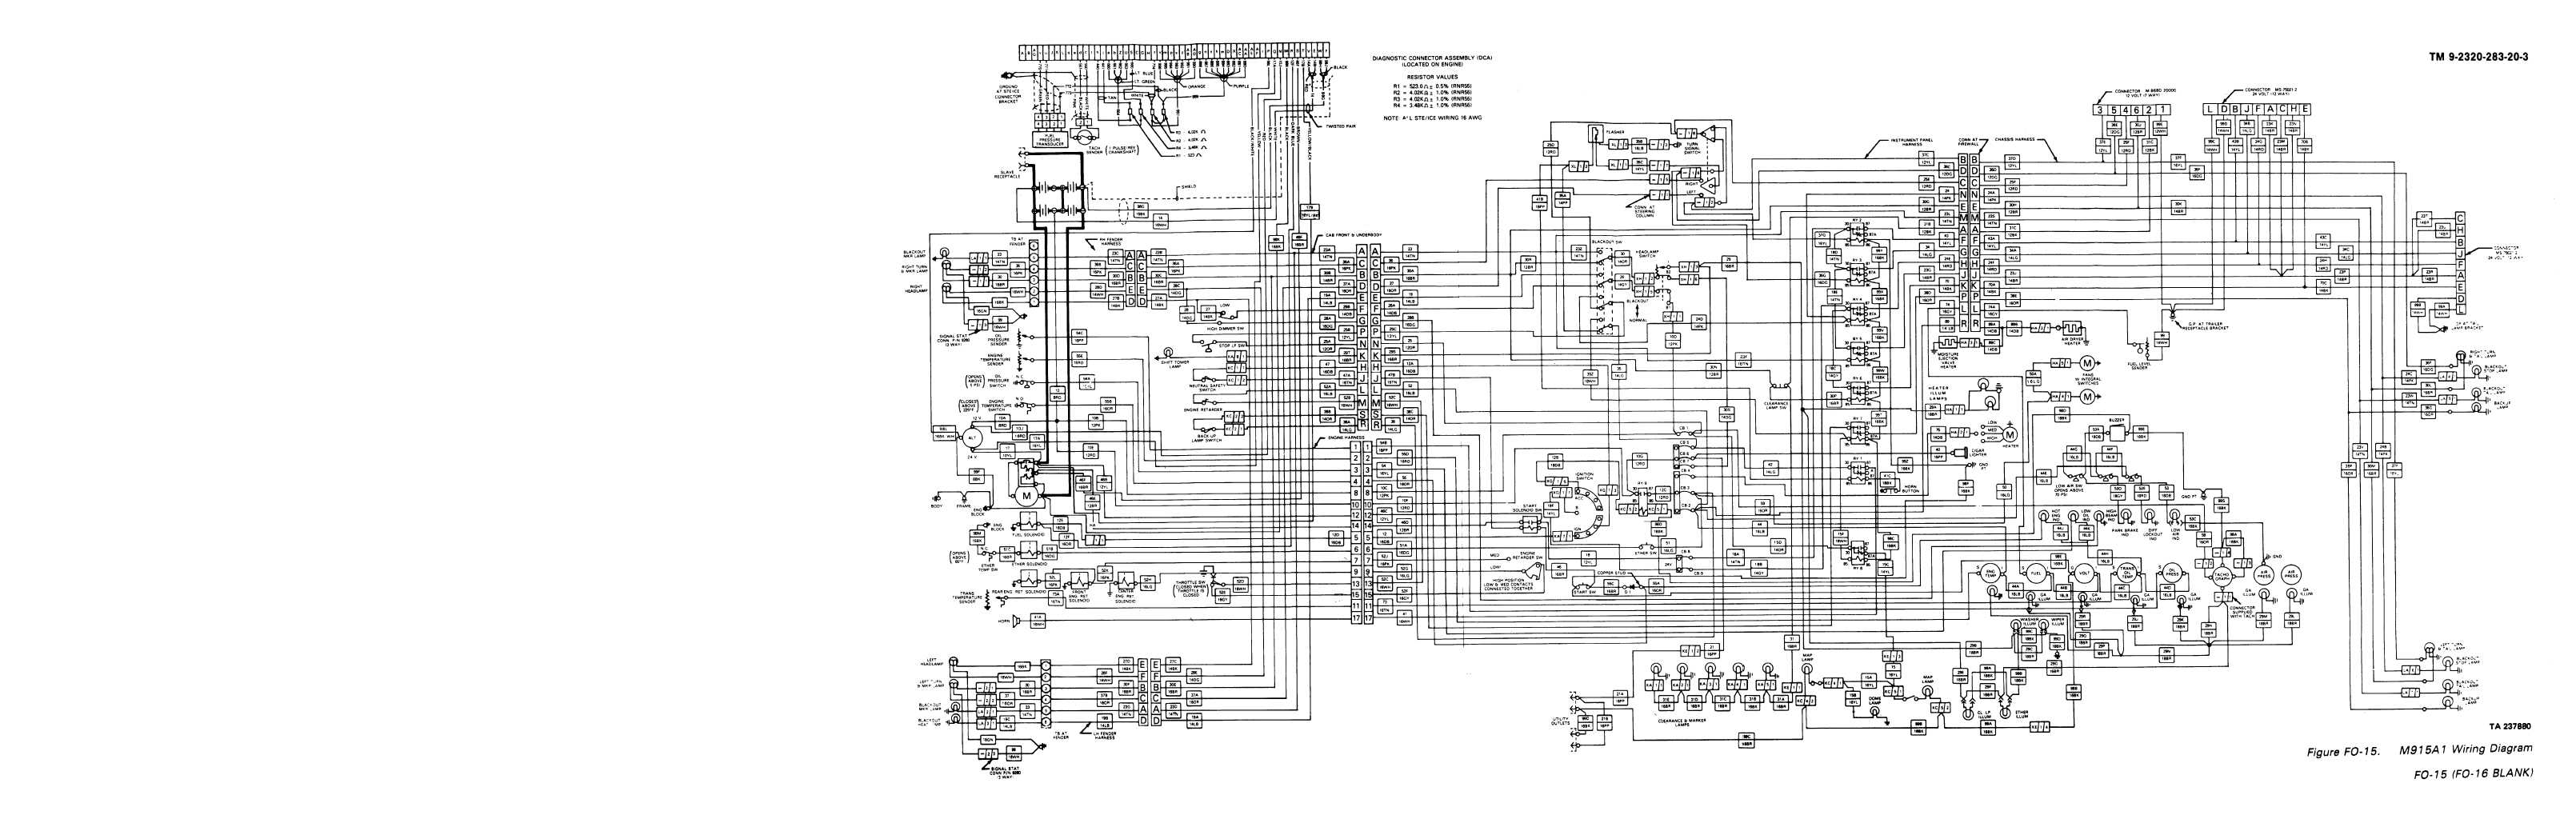 figure f0 15 m915a1 wiring diagram